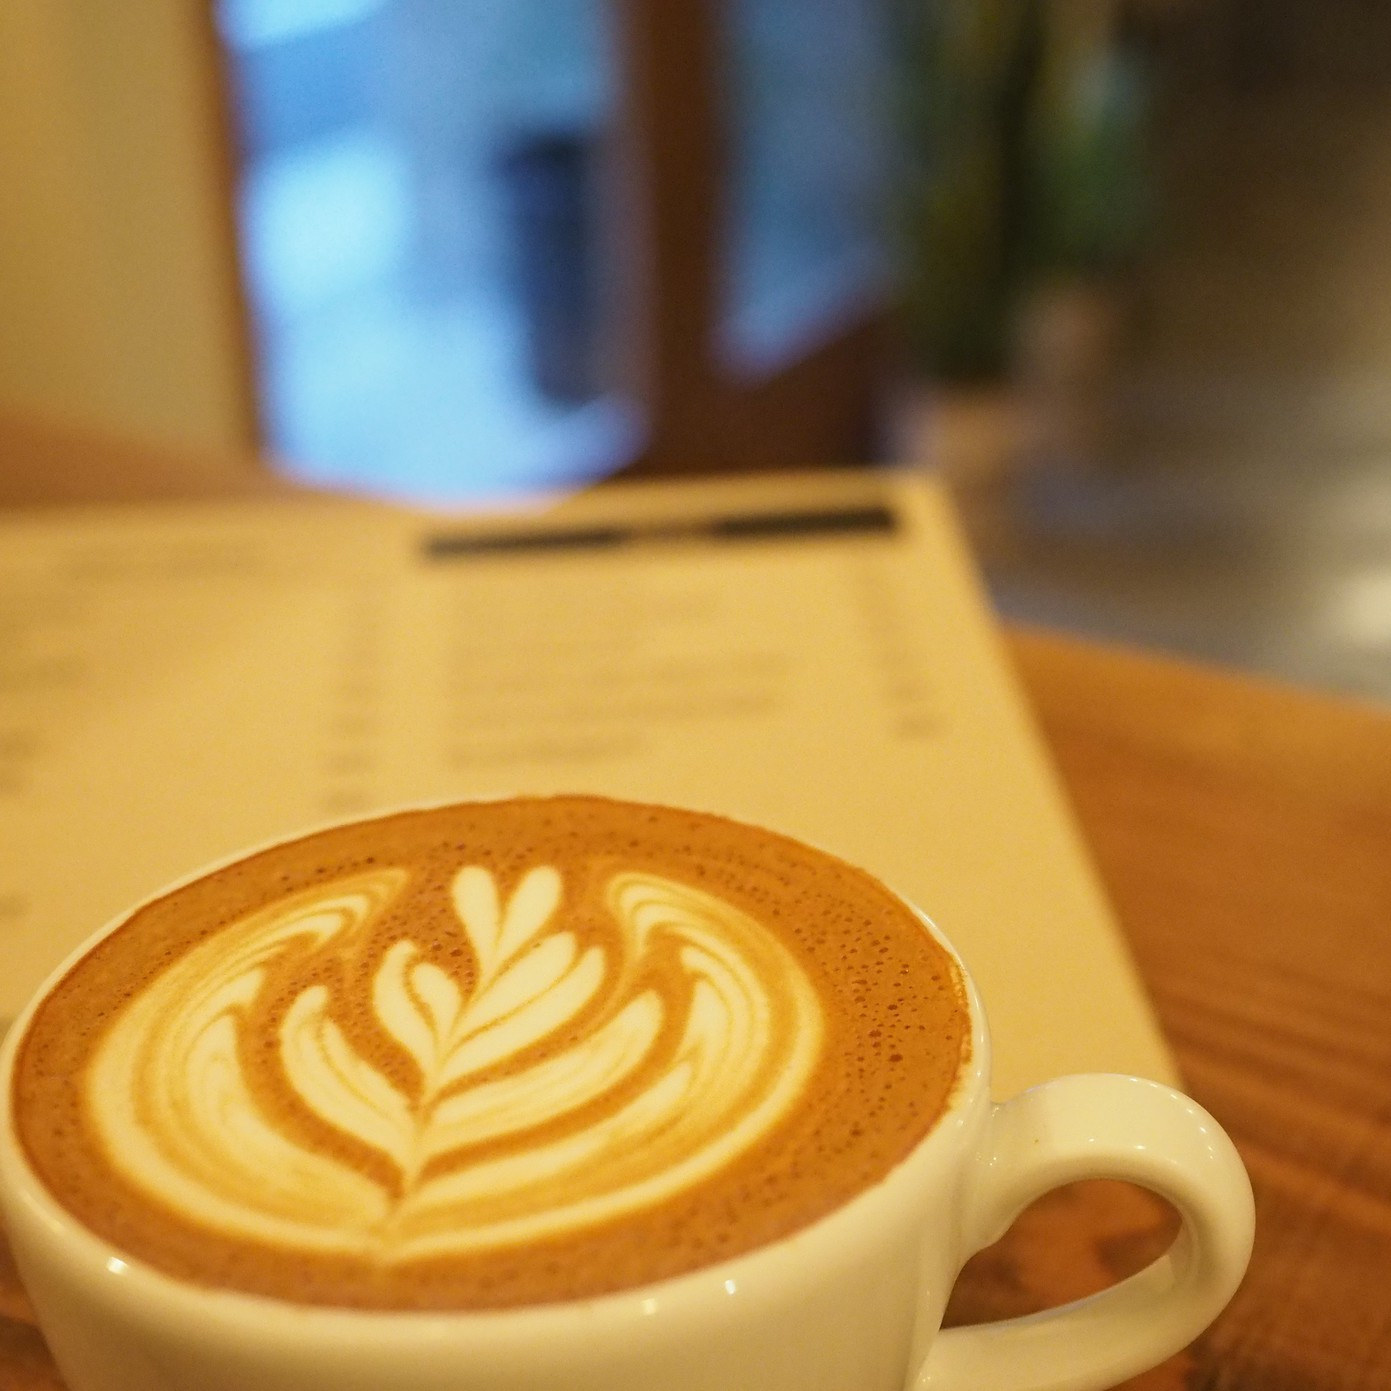 almond cafe latte